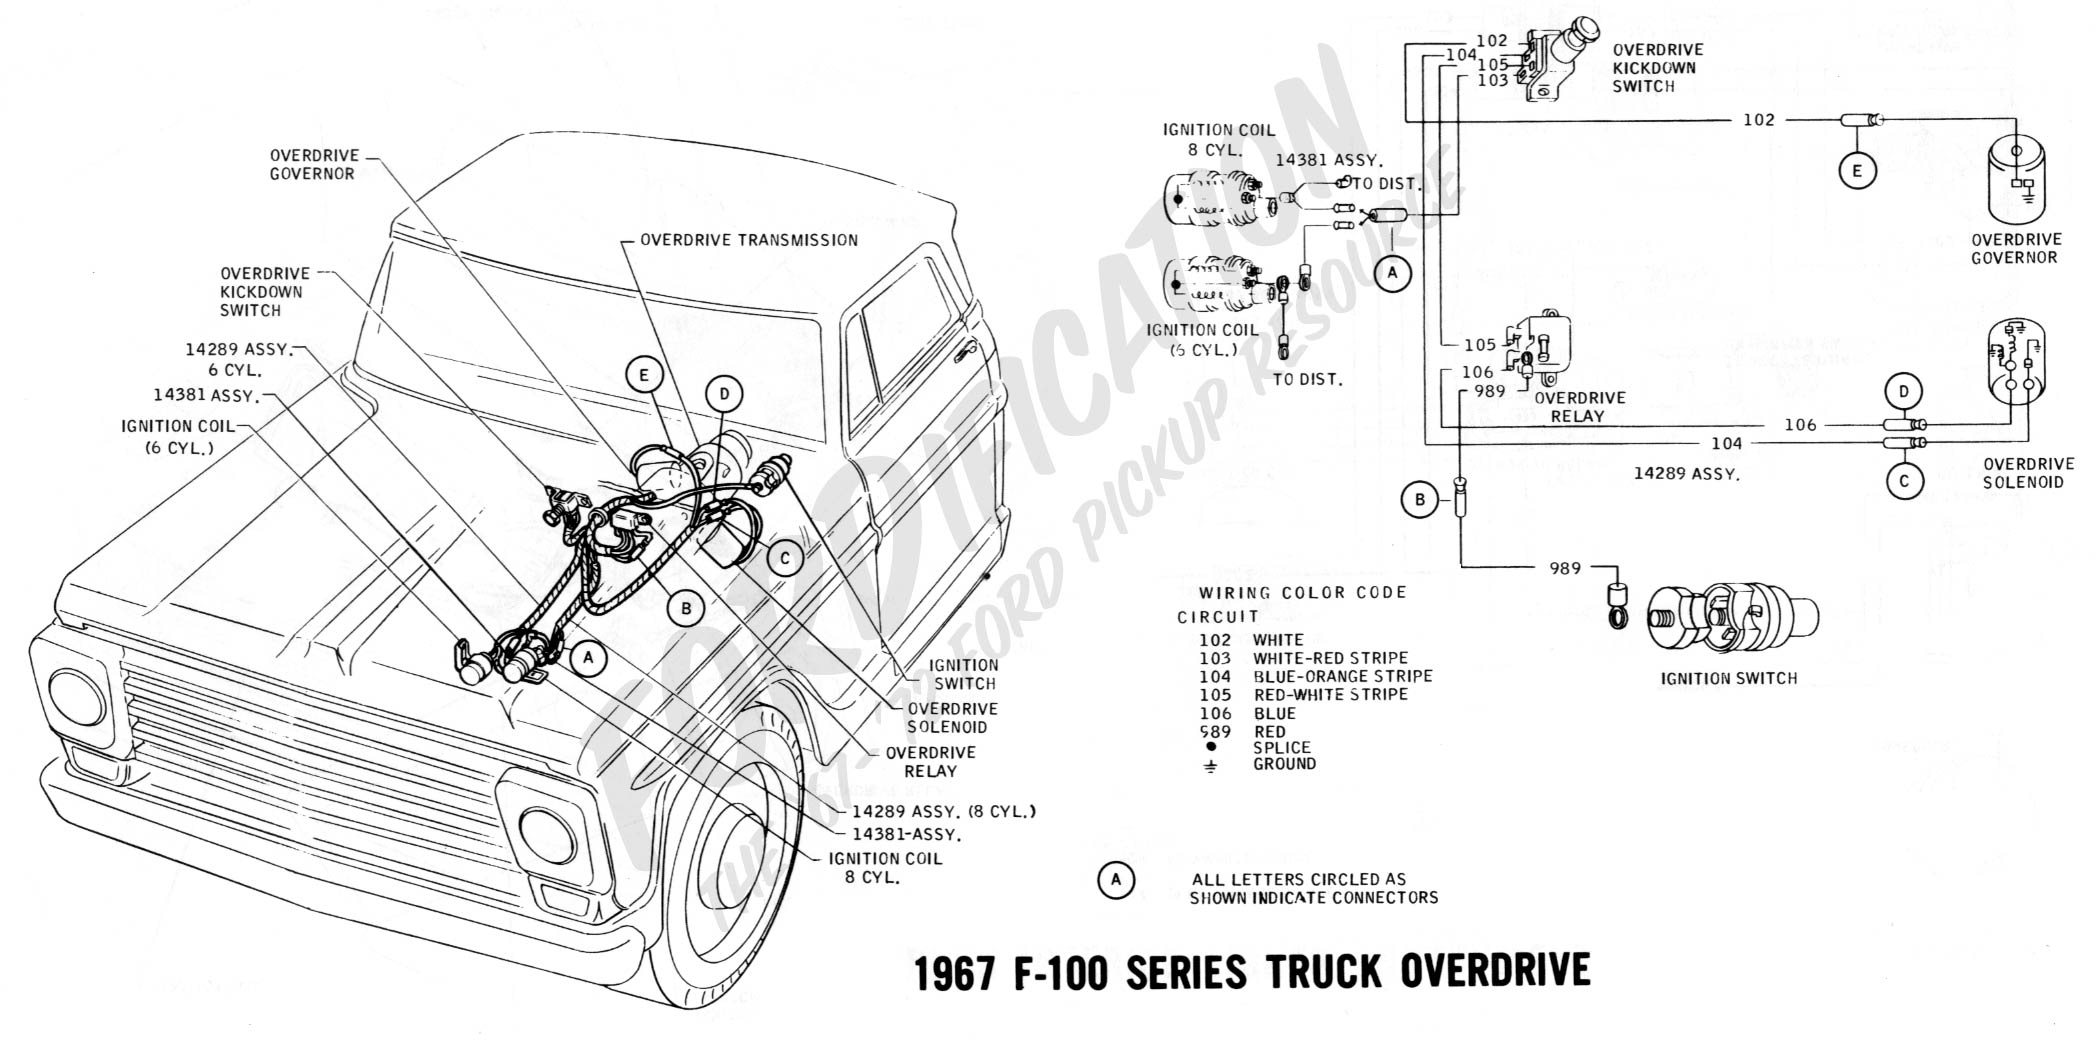 1970 Ford F250 Fuse Box Wiring Diagram F 250 1967 F100 Application U2022 Rh Cleanairclub Co 1999 Panel